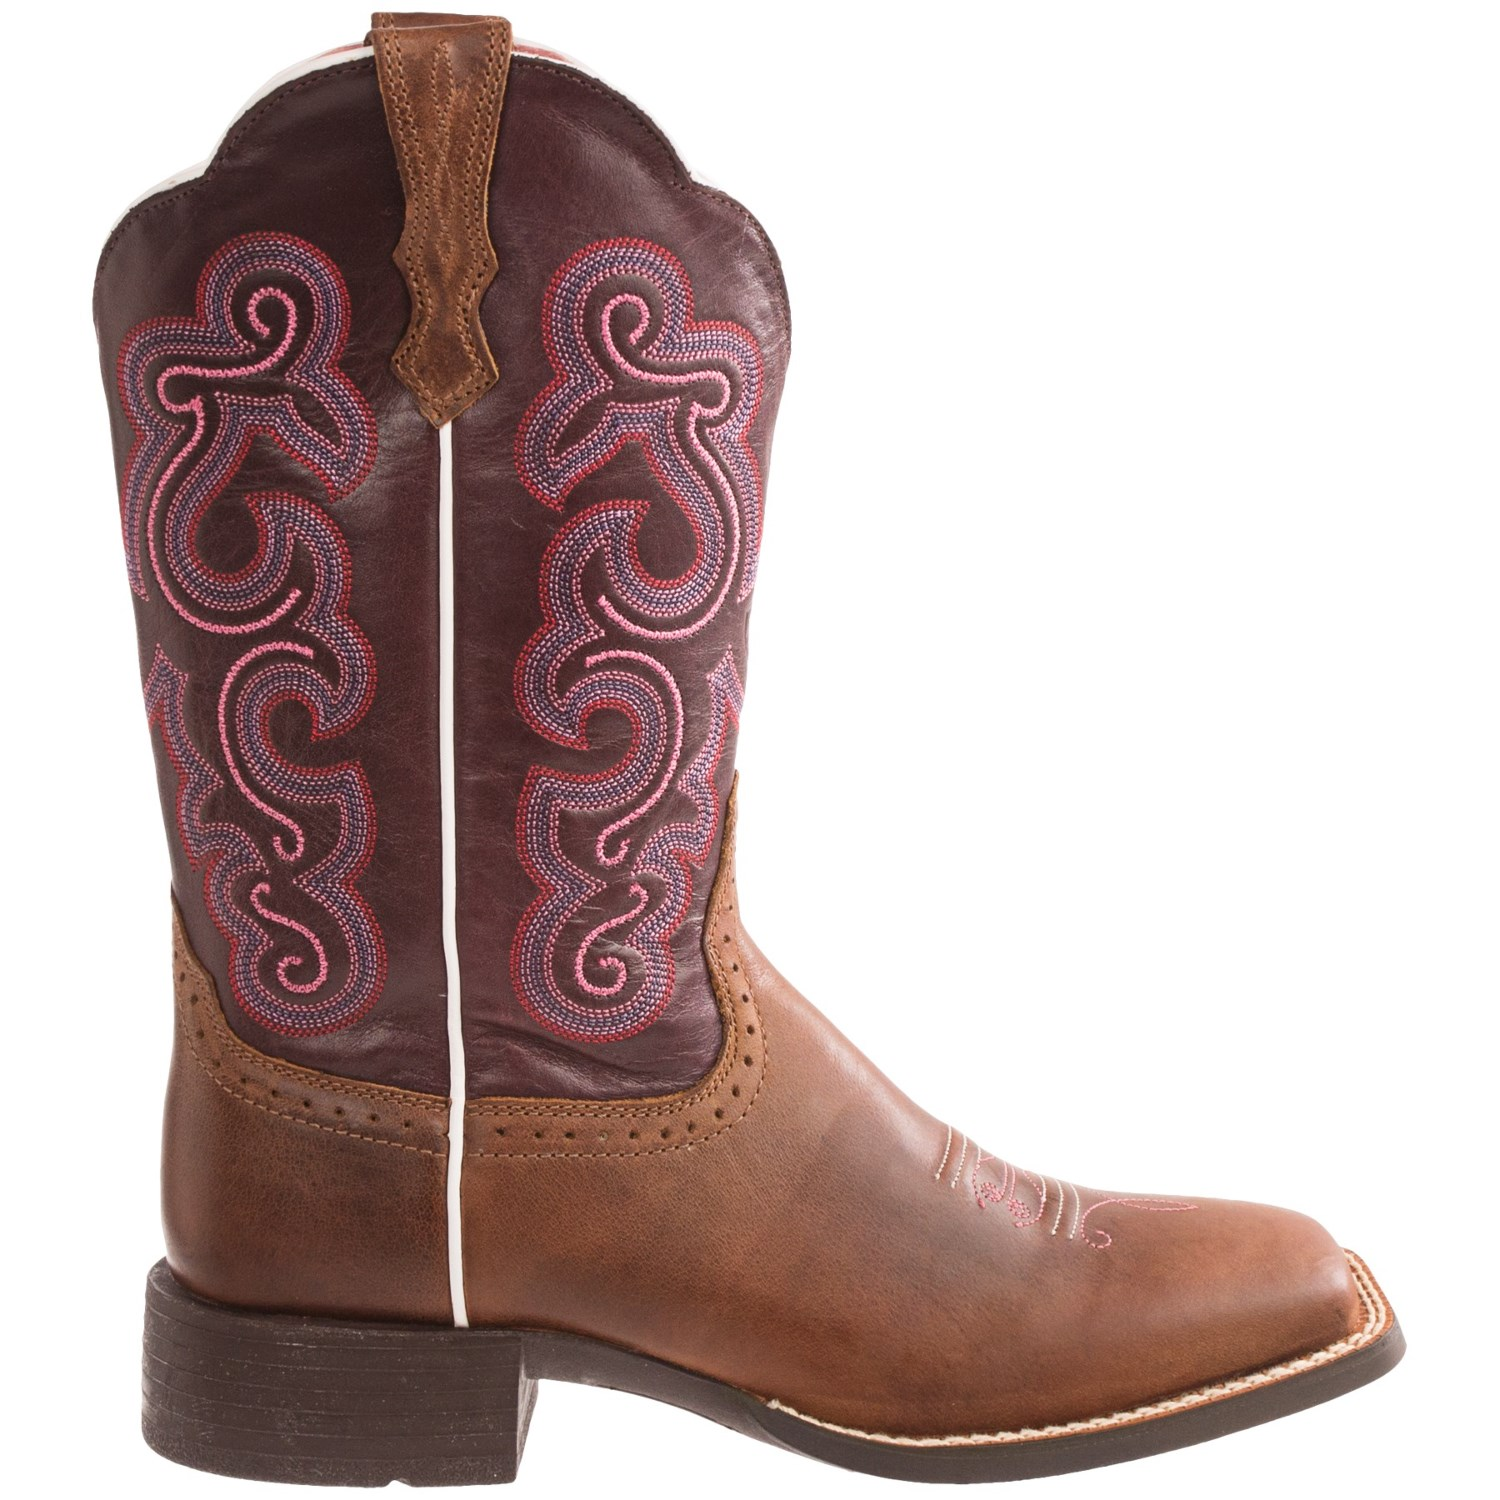 Simple Ariat Womens Quickdraw Square Toe Cowboy Western Boot Badlands Brown 10006304 | EBay